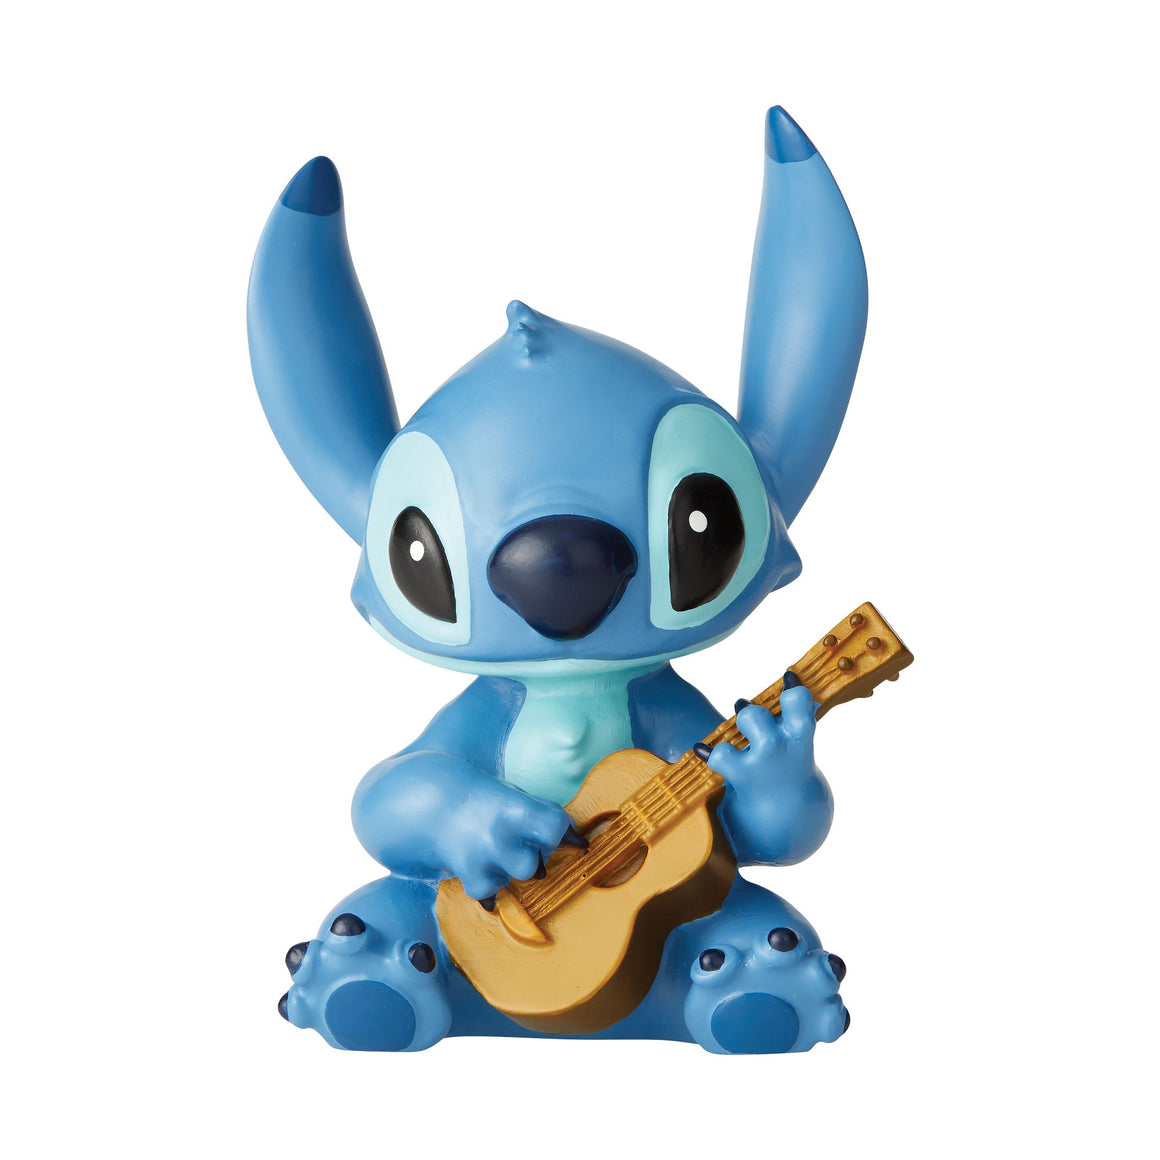 Disney Showcase Stitch Guitar Figurine